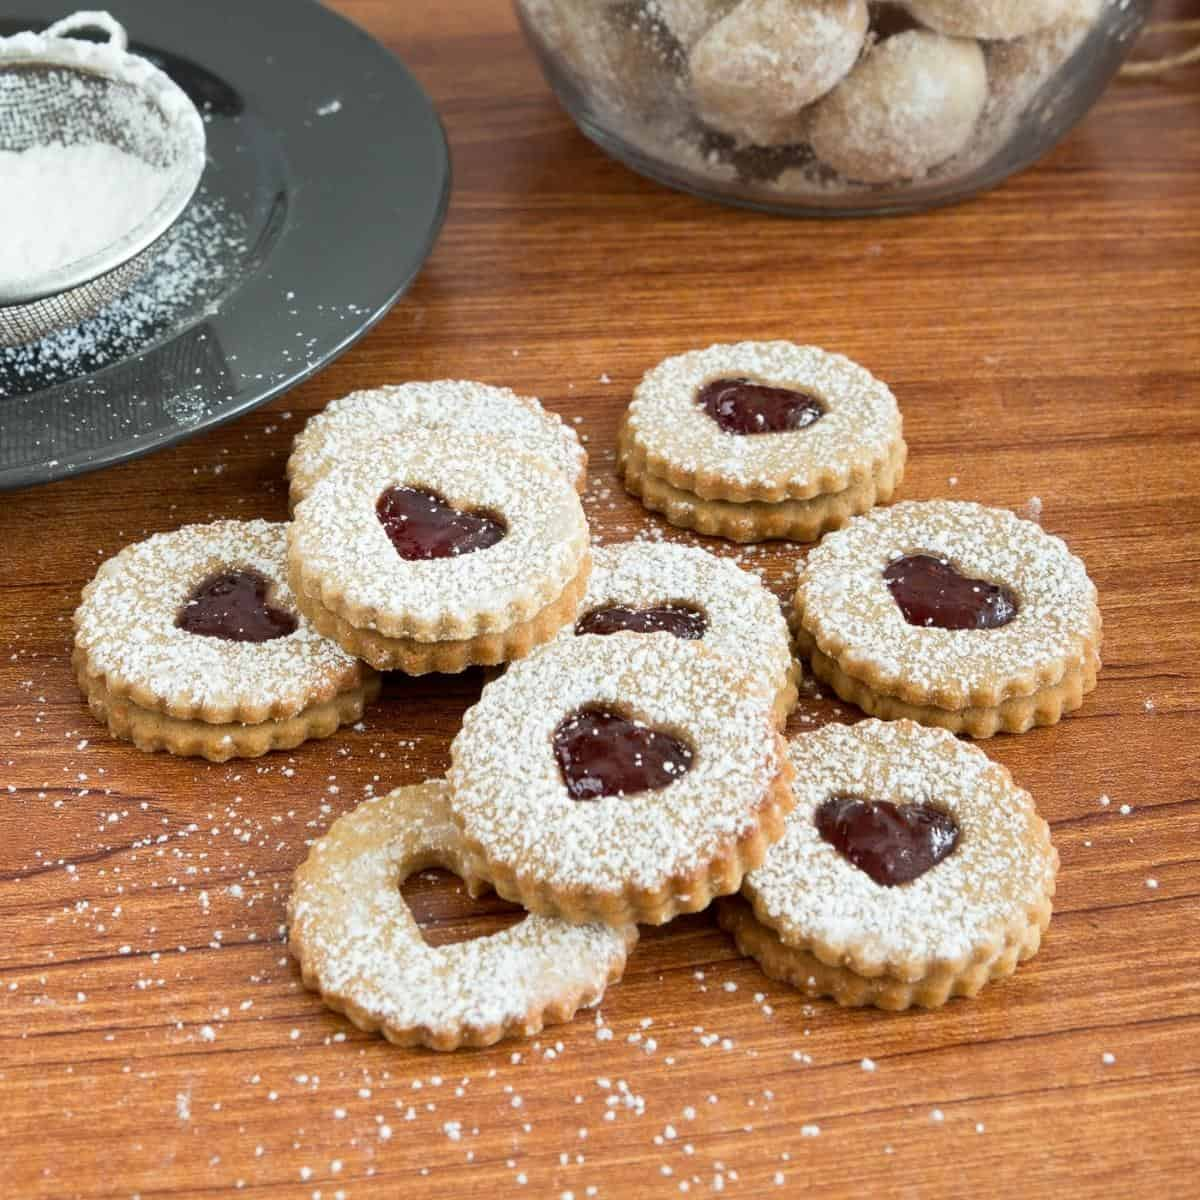 Linzer cookies on a wooden table